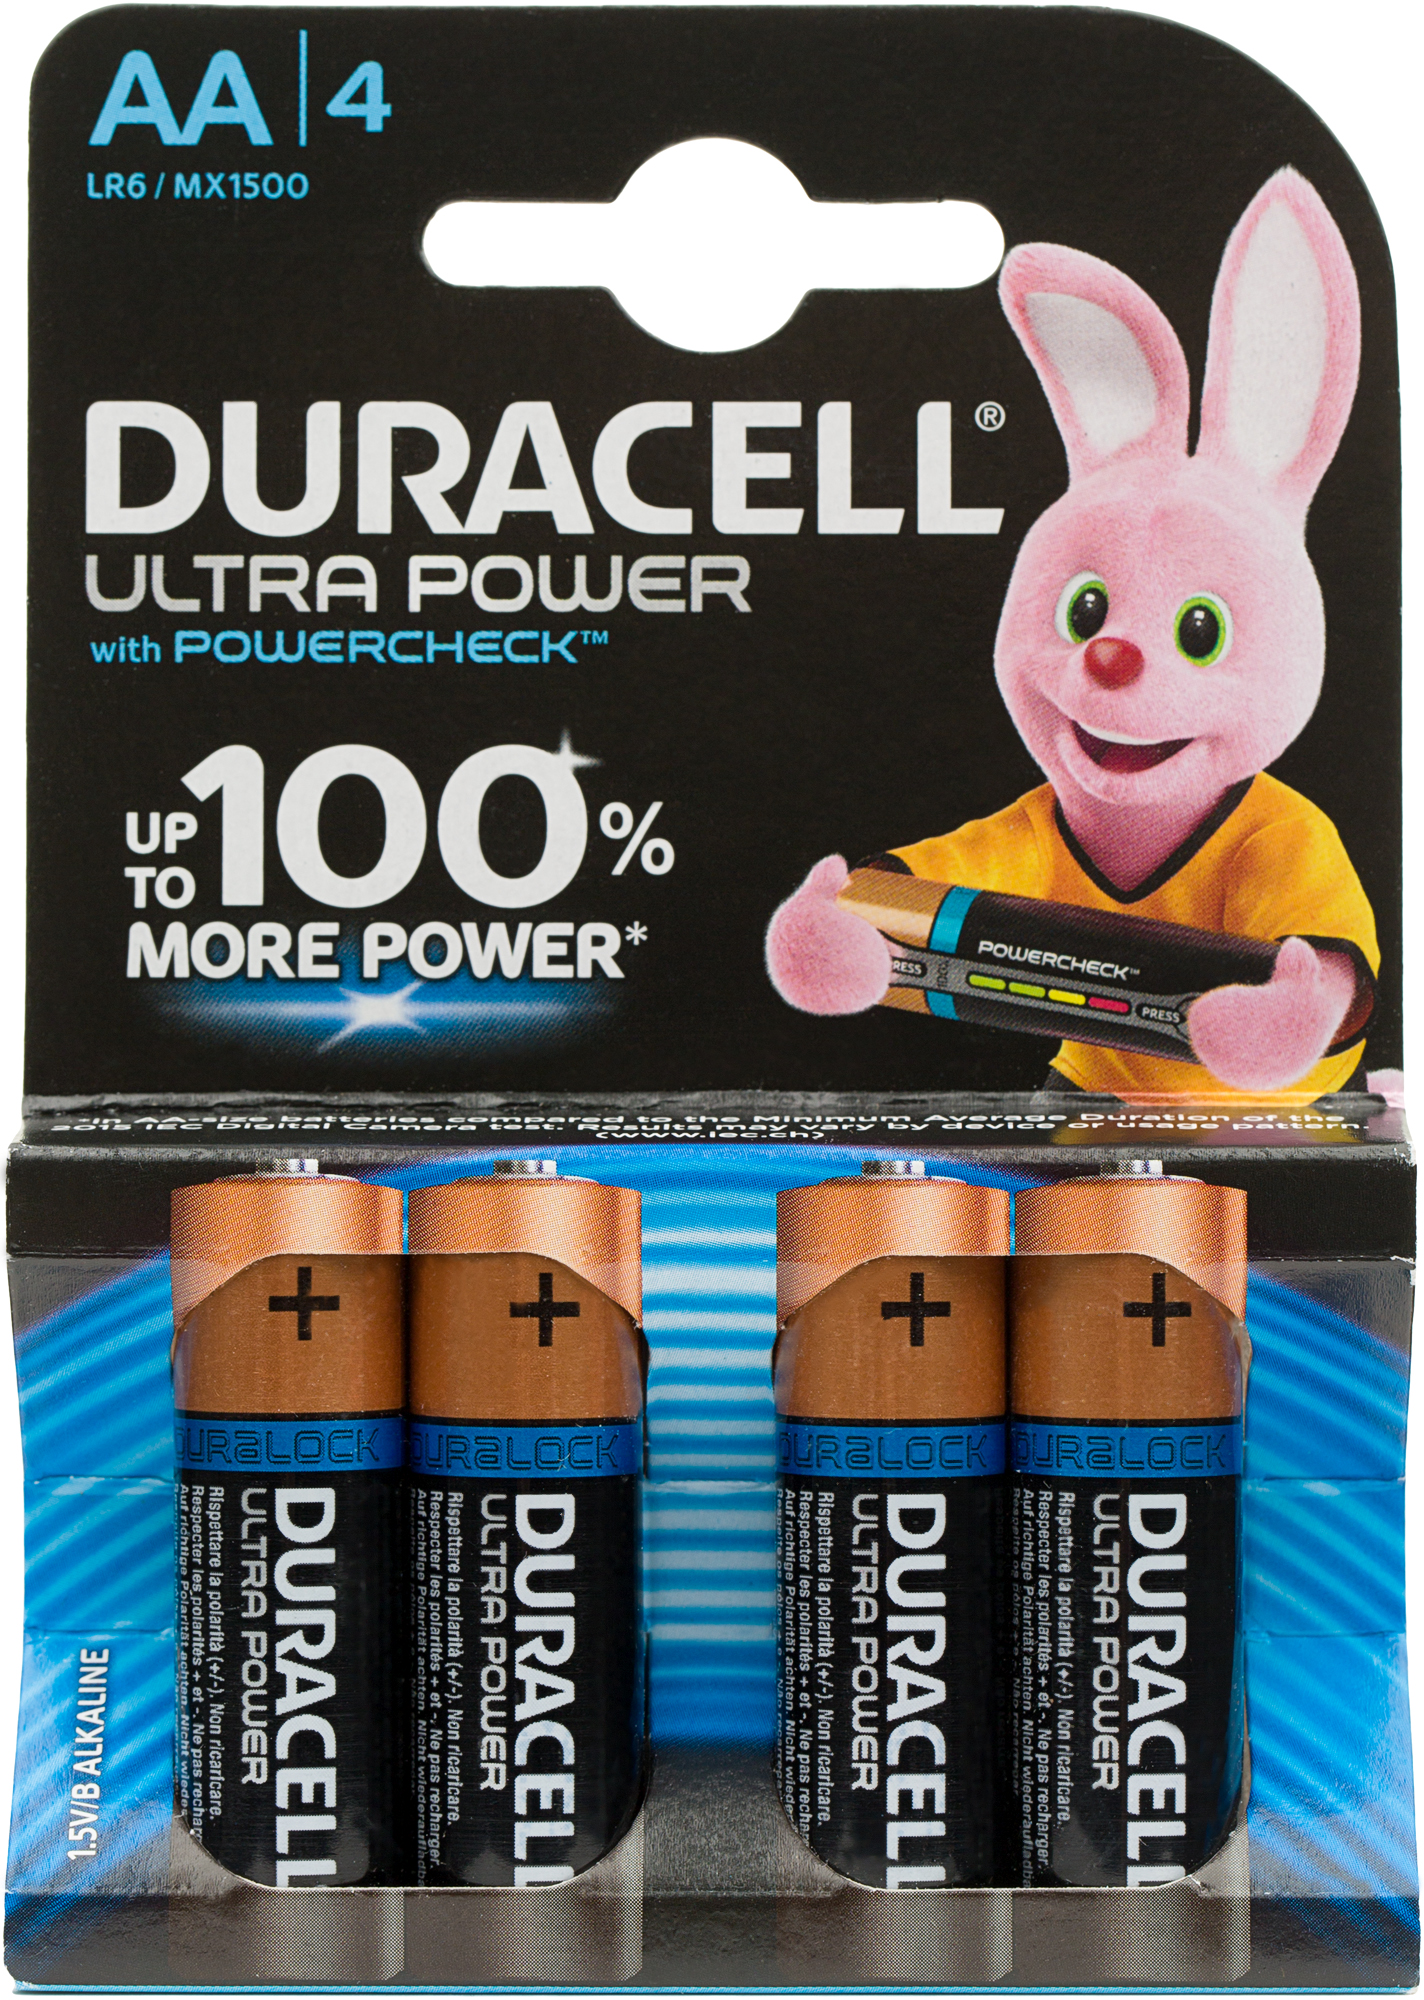 Duracell Батарейки щелочные Ultra Power АА/LR6, 4 шт.